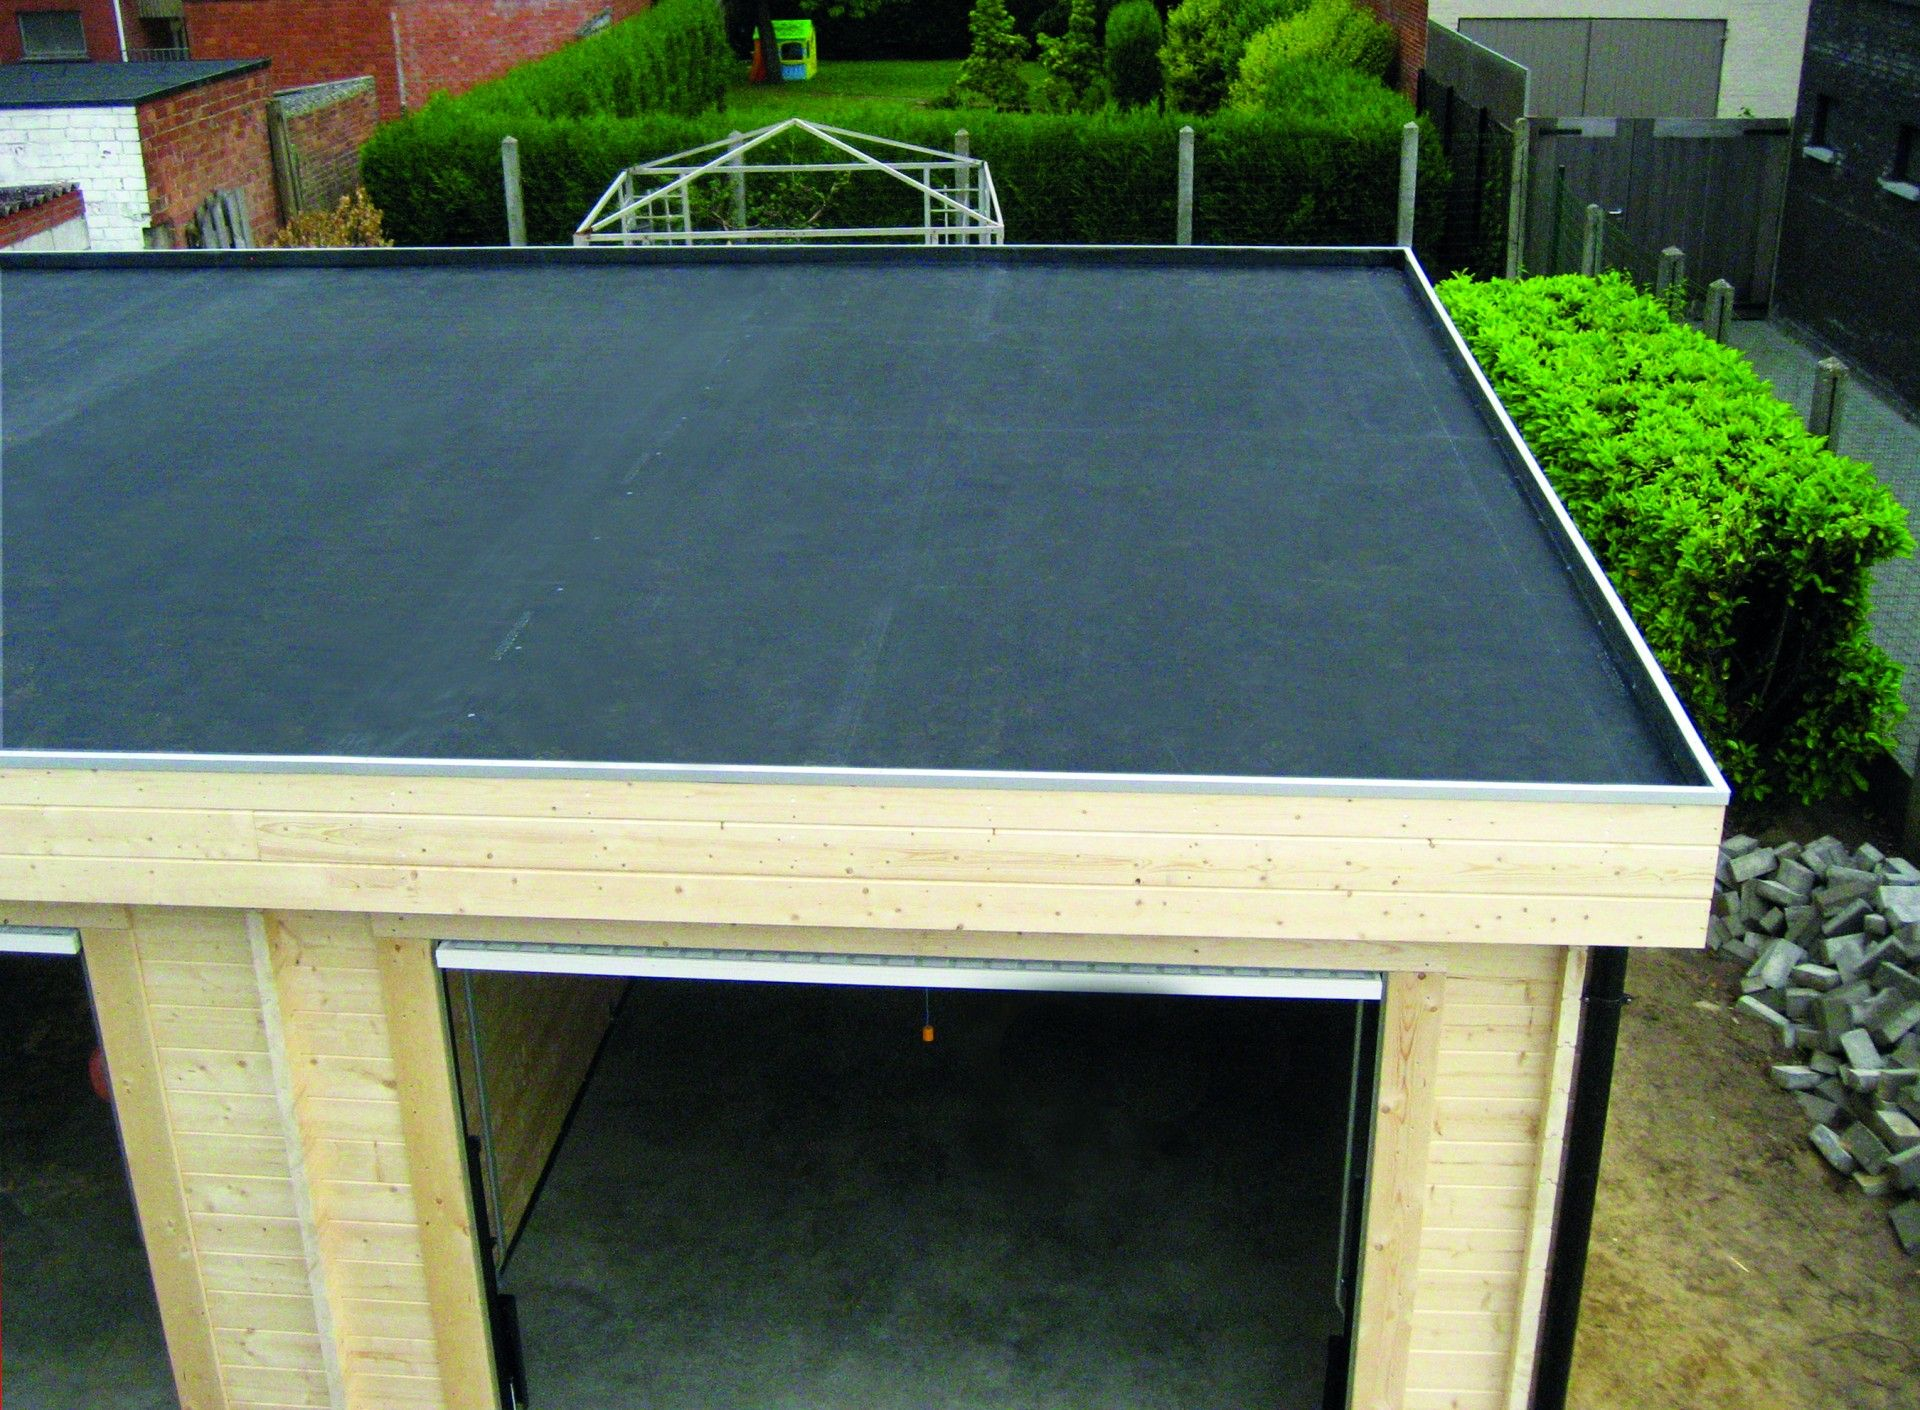 The Firestone Rubbercover Epdm Roofing System Is The Ideal Durable Solution For A Multitude Of Small Residential Flat Roofing Ap Epdm Roofing Roofing Garages